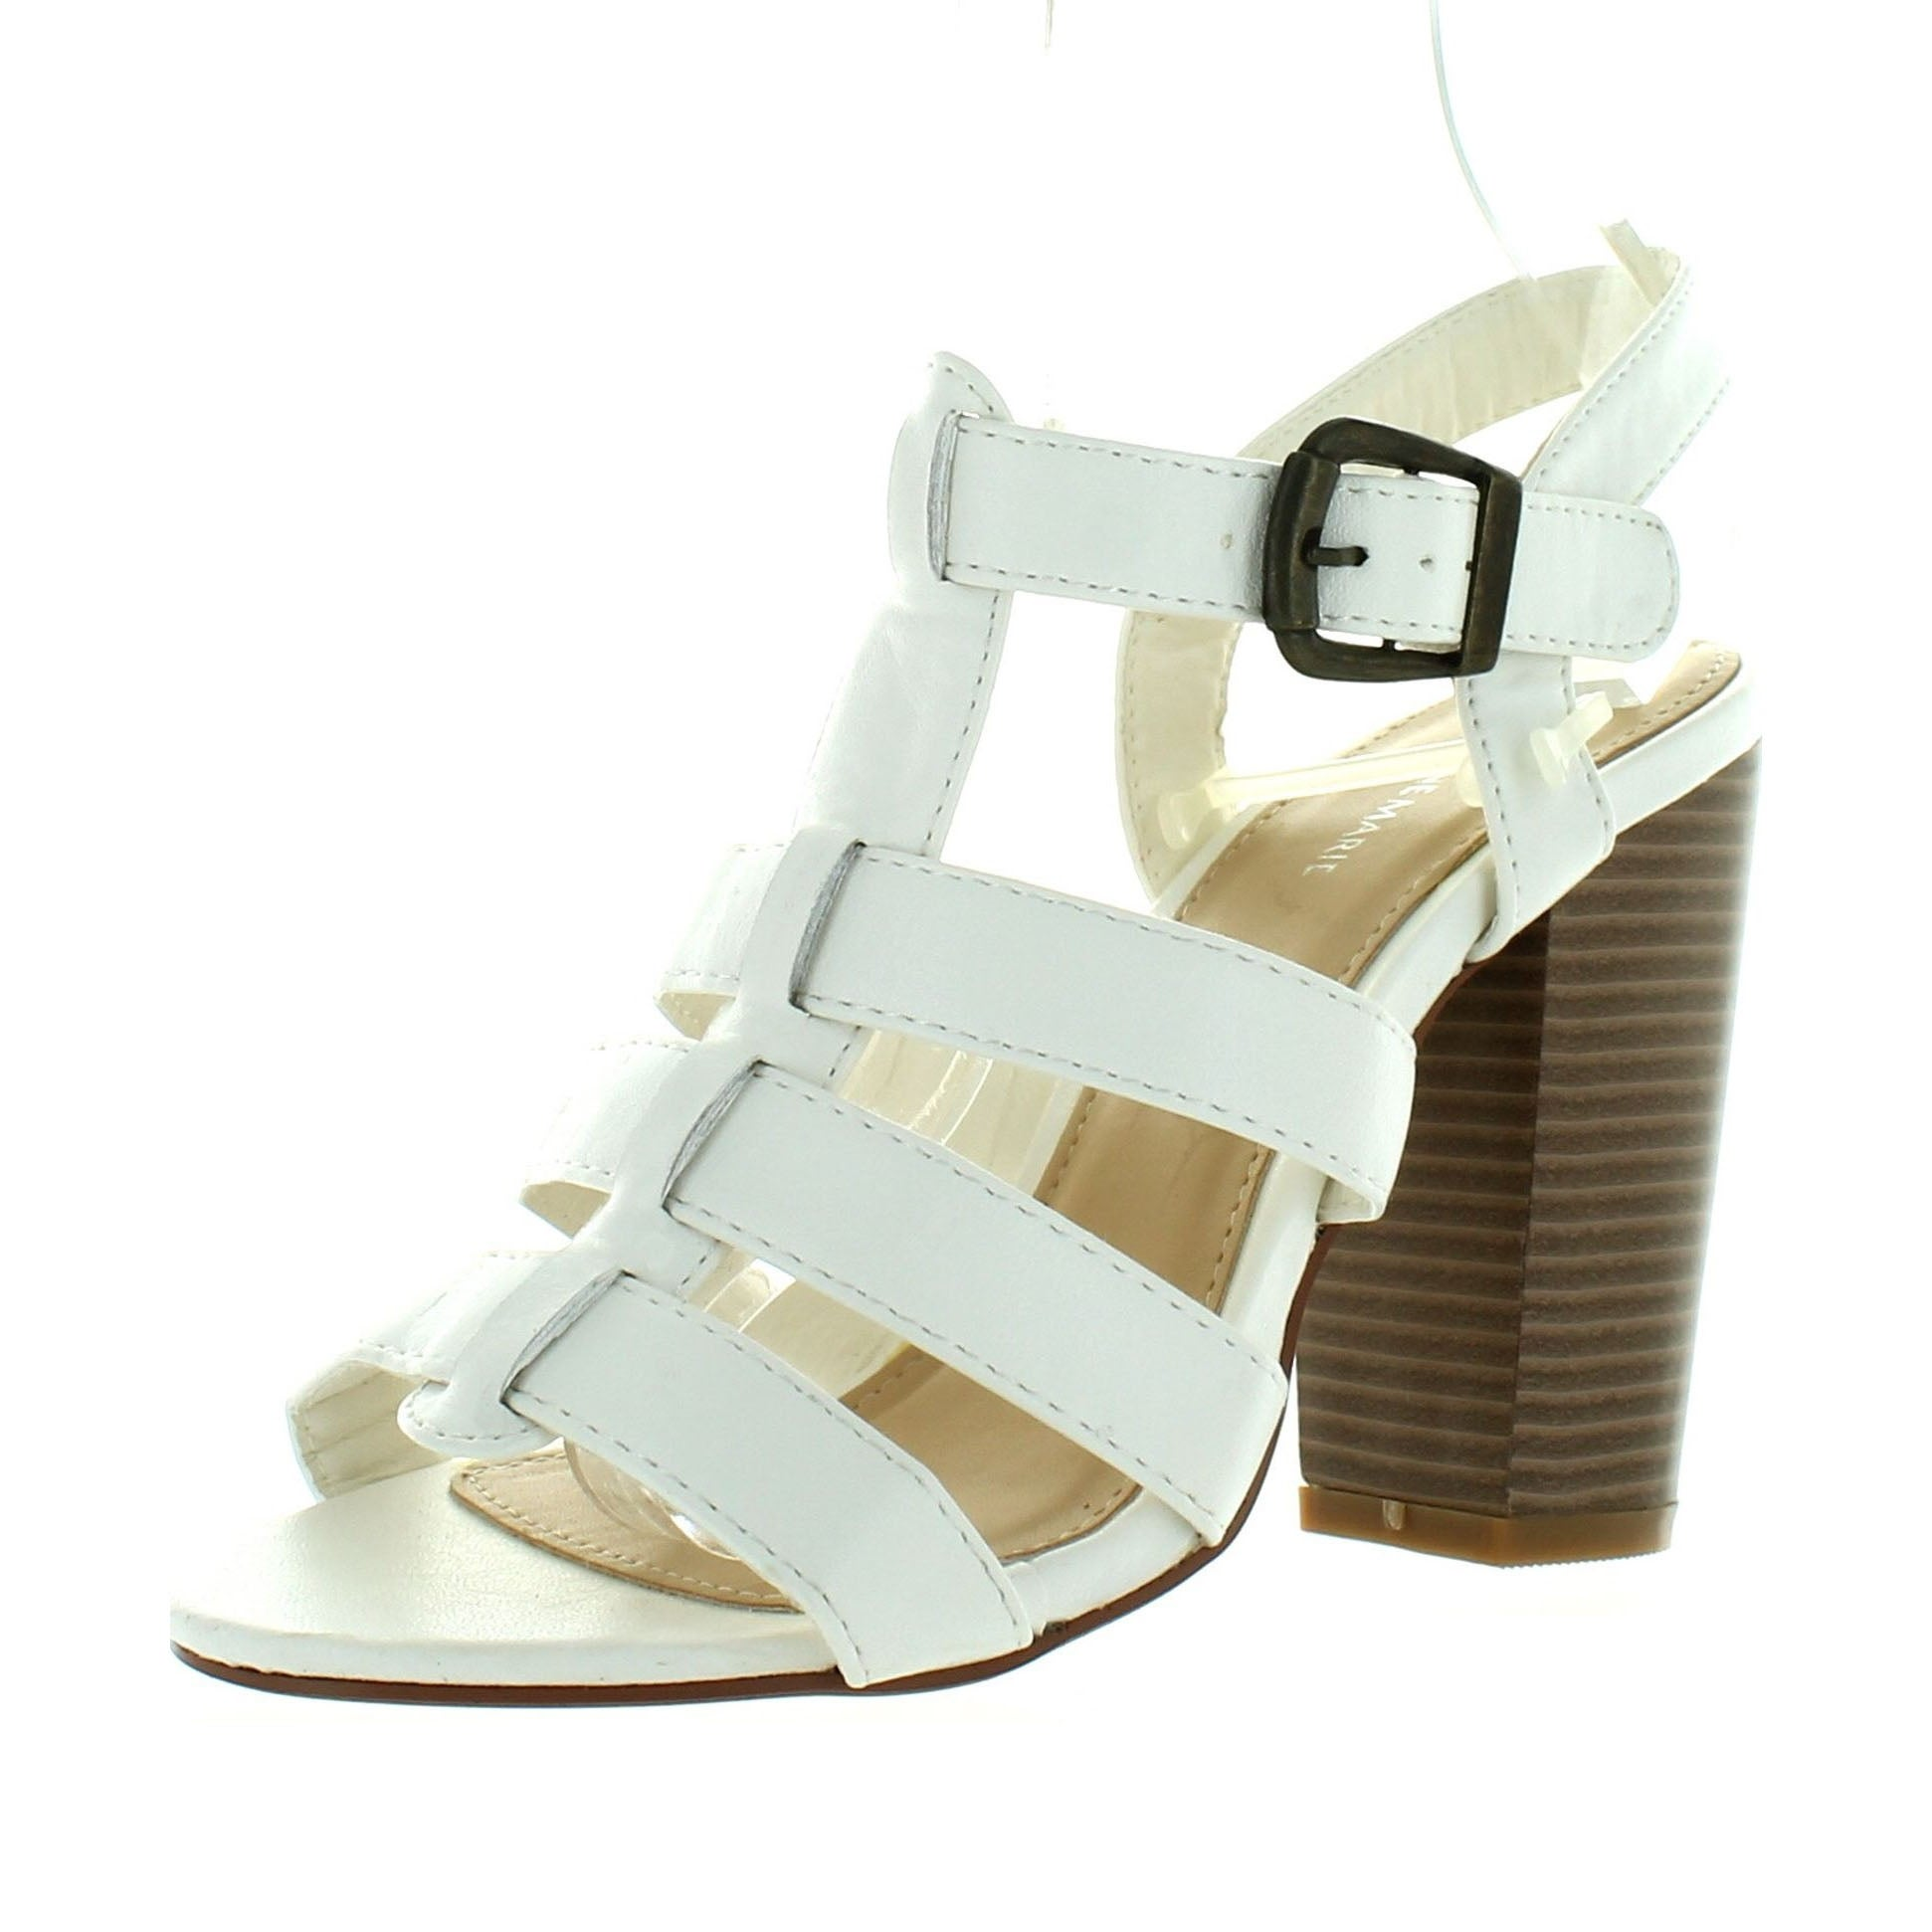 3434cd968 Shop Anne Marie Savana-1 Women Ankle Strappy Block Chunky High Heel Sandal  - Free Shipping On Orders Over $45 - Overstock - 14384481